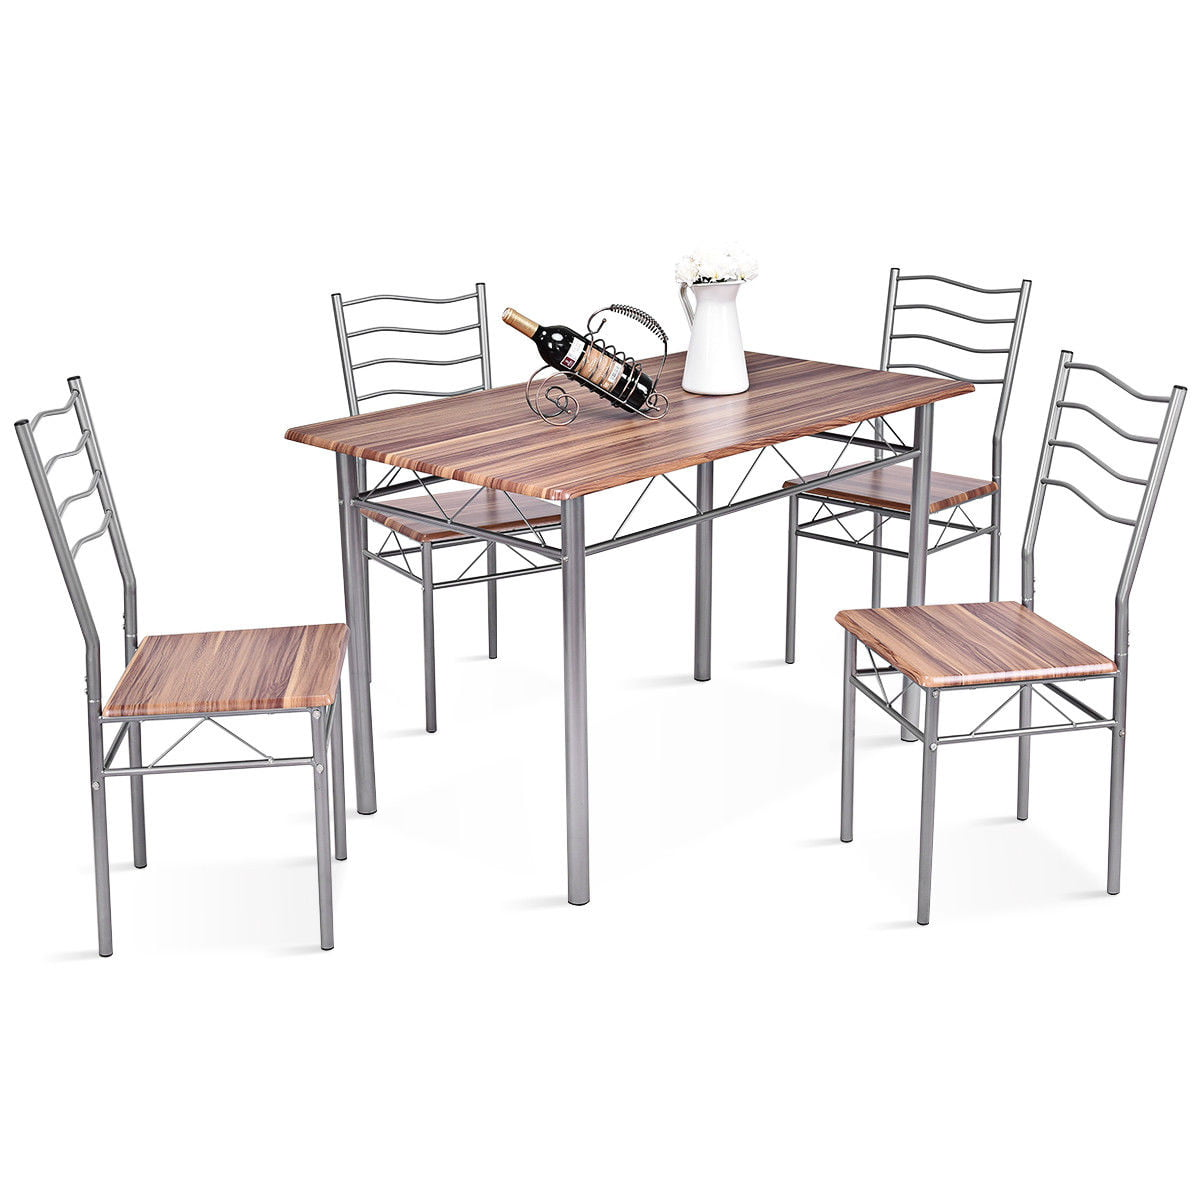 beech dining room furniture | Gymax 5 Piece Dining Set Beech Wooden Color Table And 4 ...